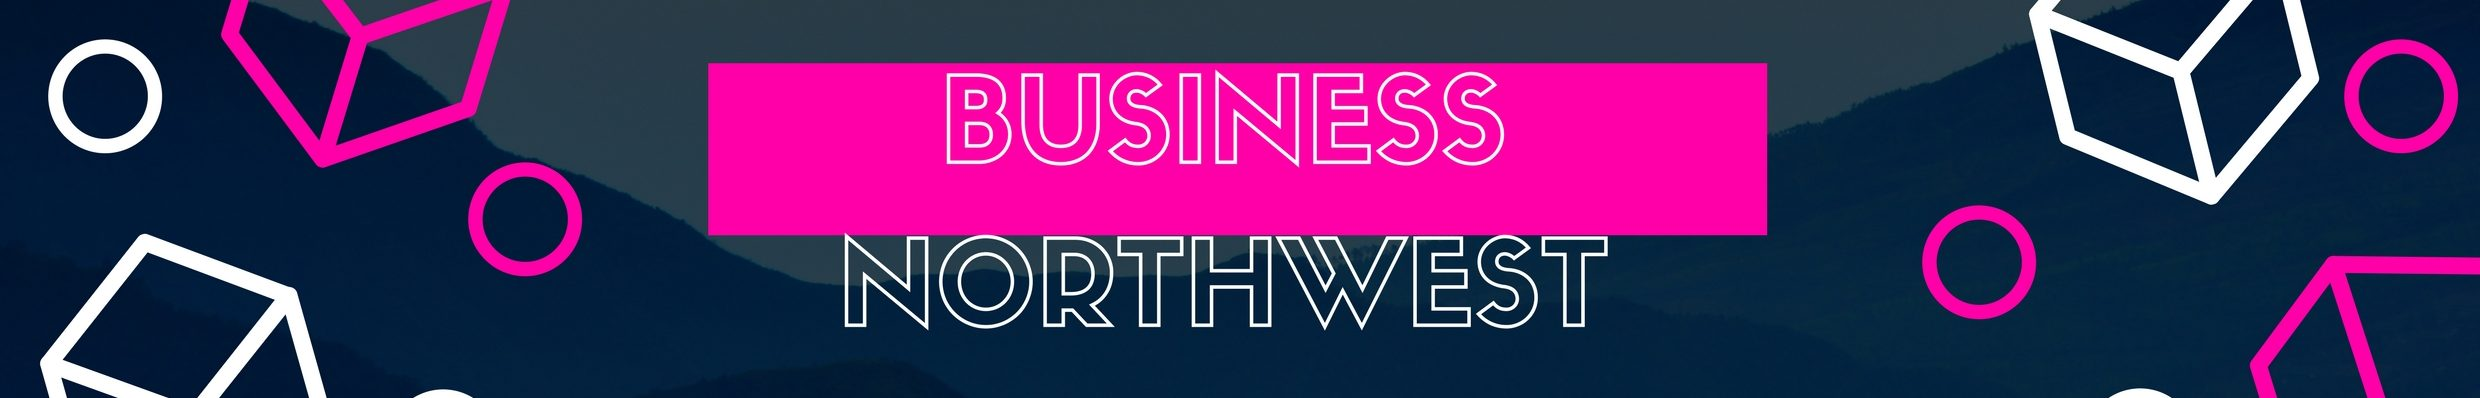 Business North West